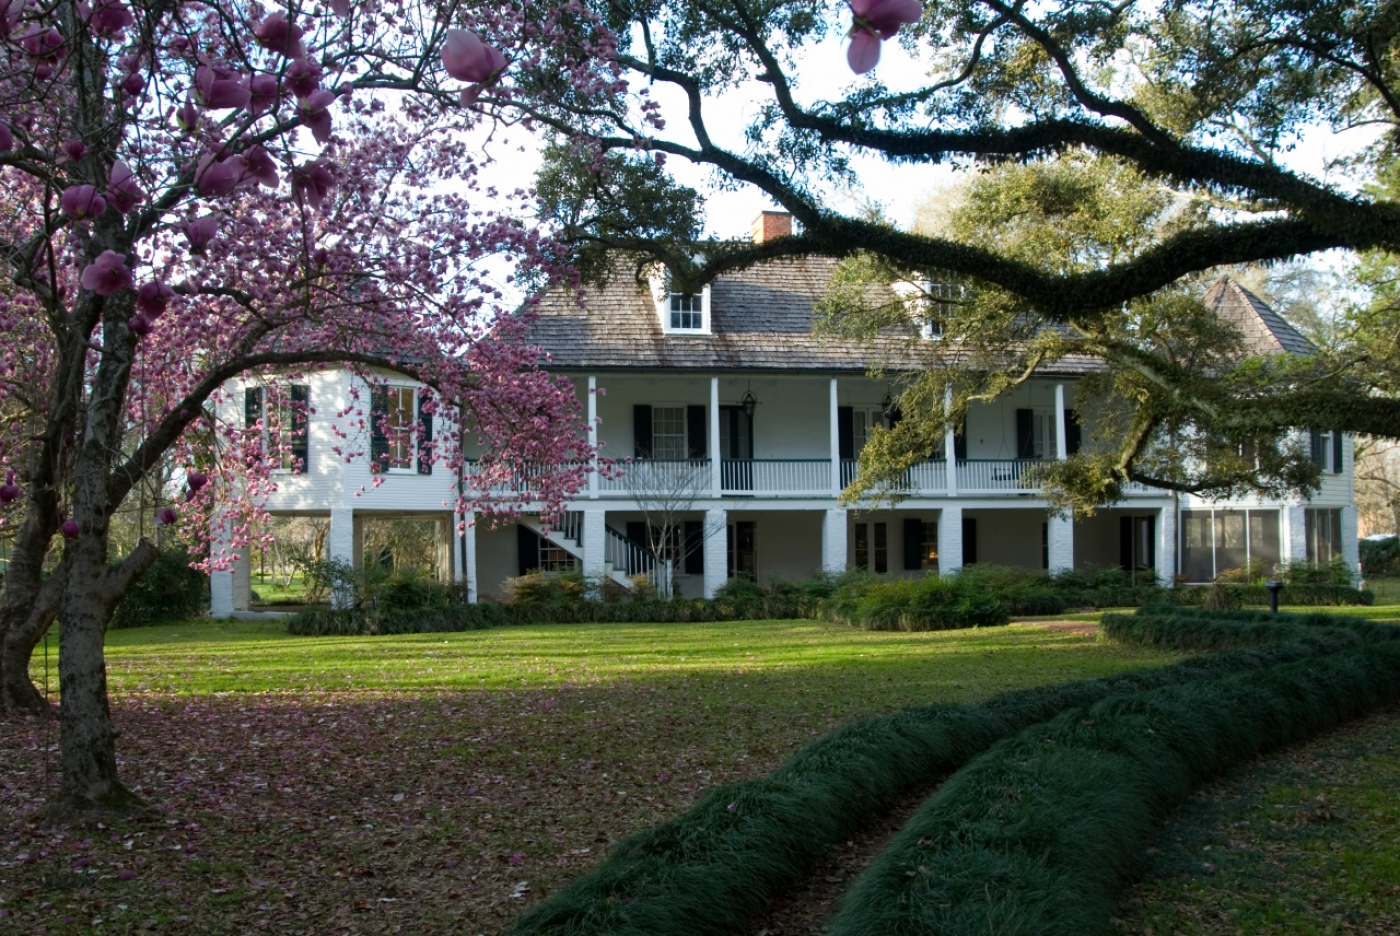 This historic plantation shares the story share the unique story of the Creole community and the life of folk artist Clementine Hunter.